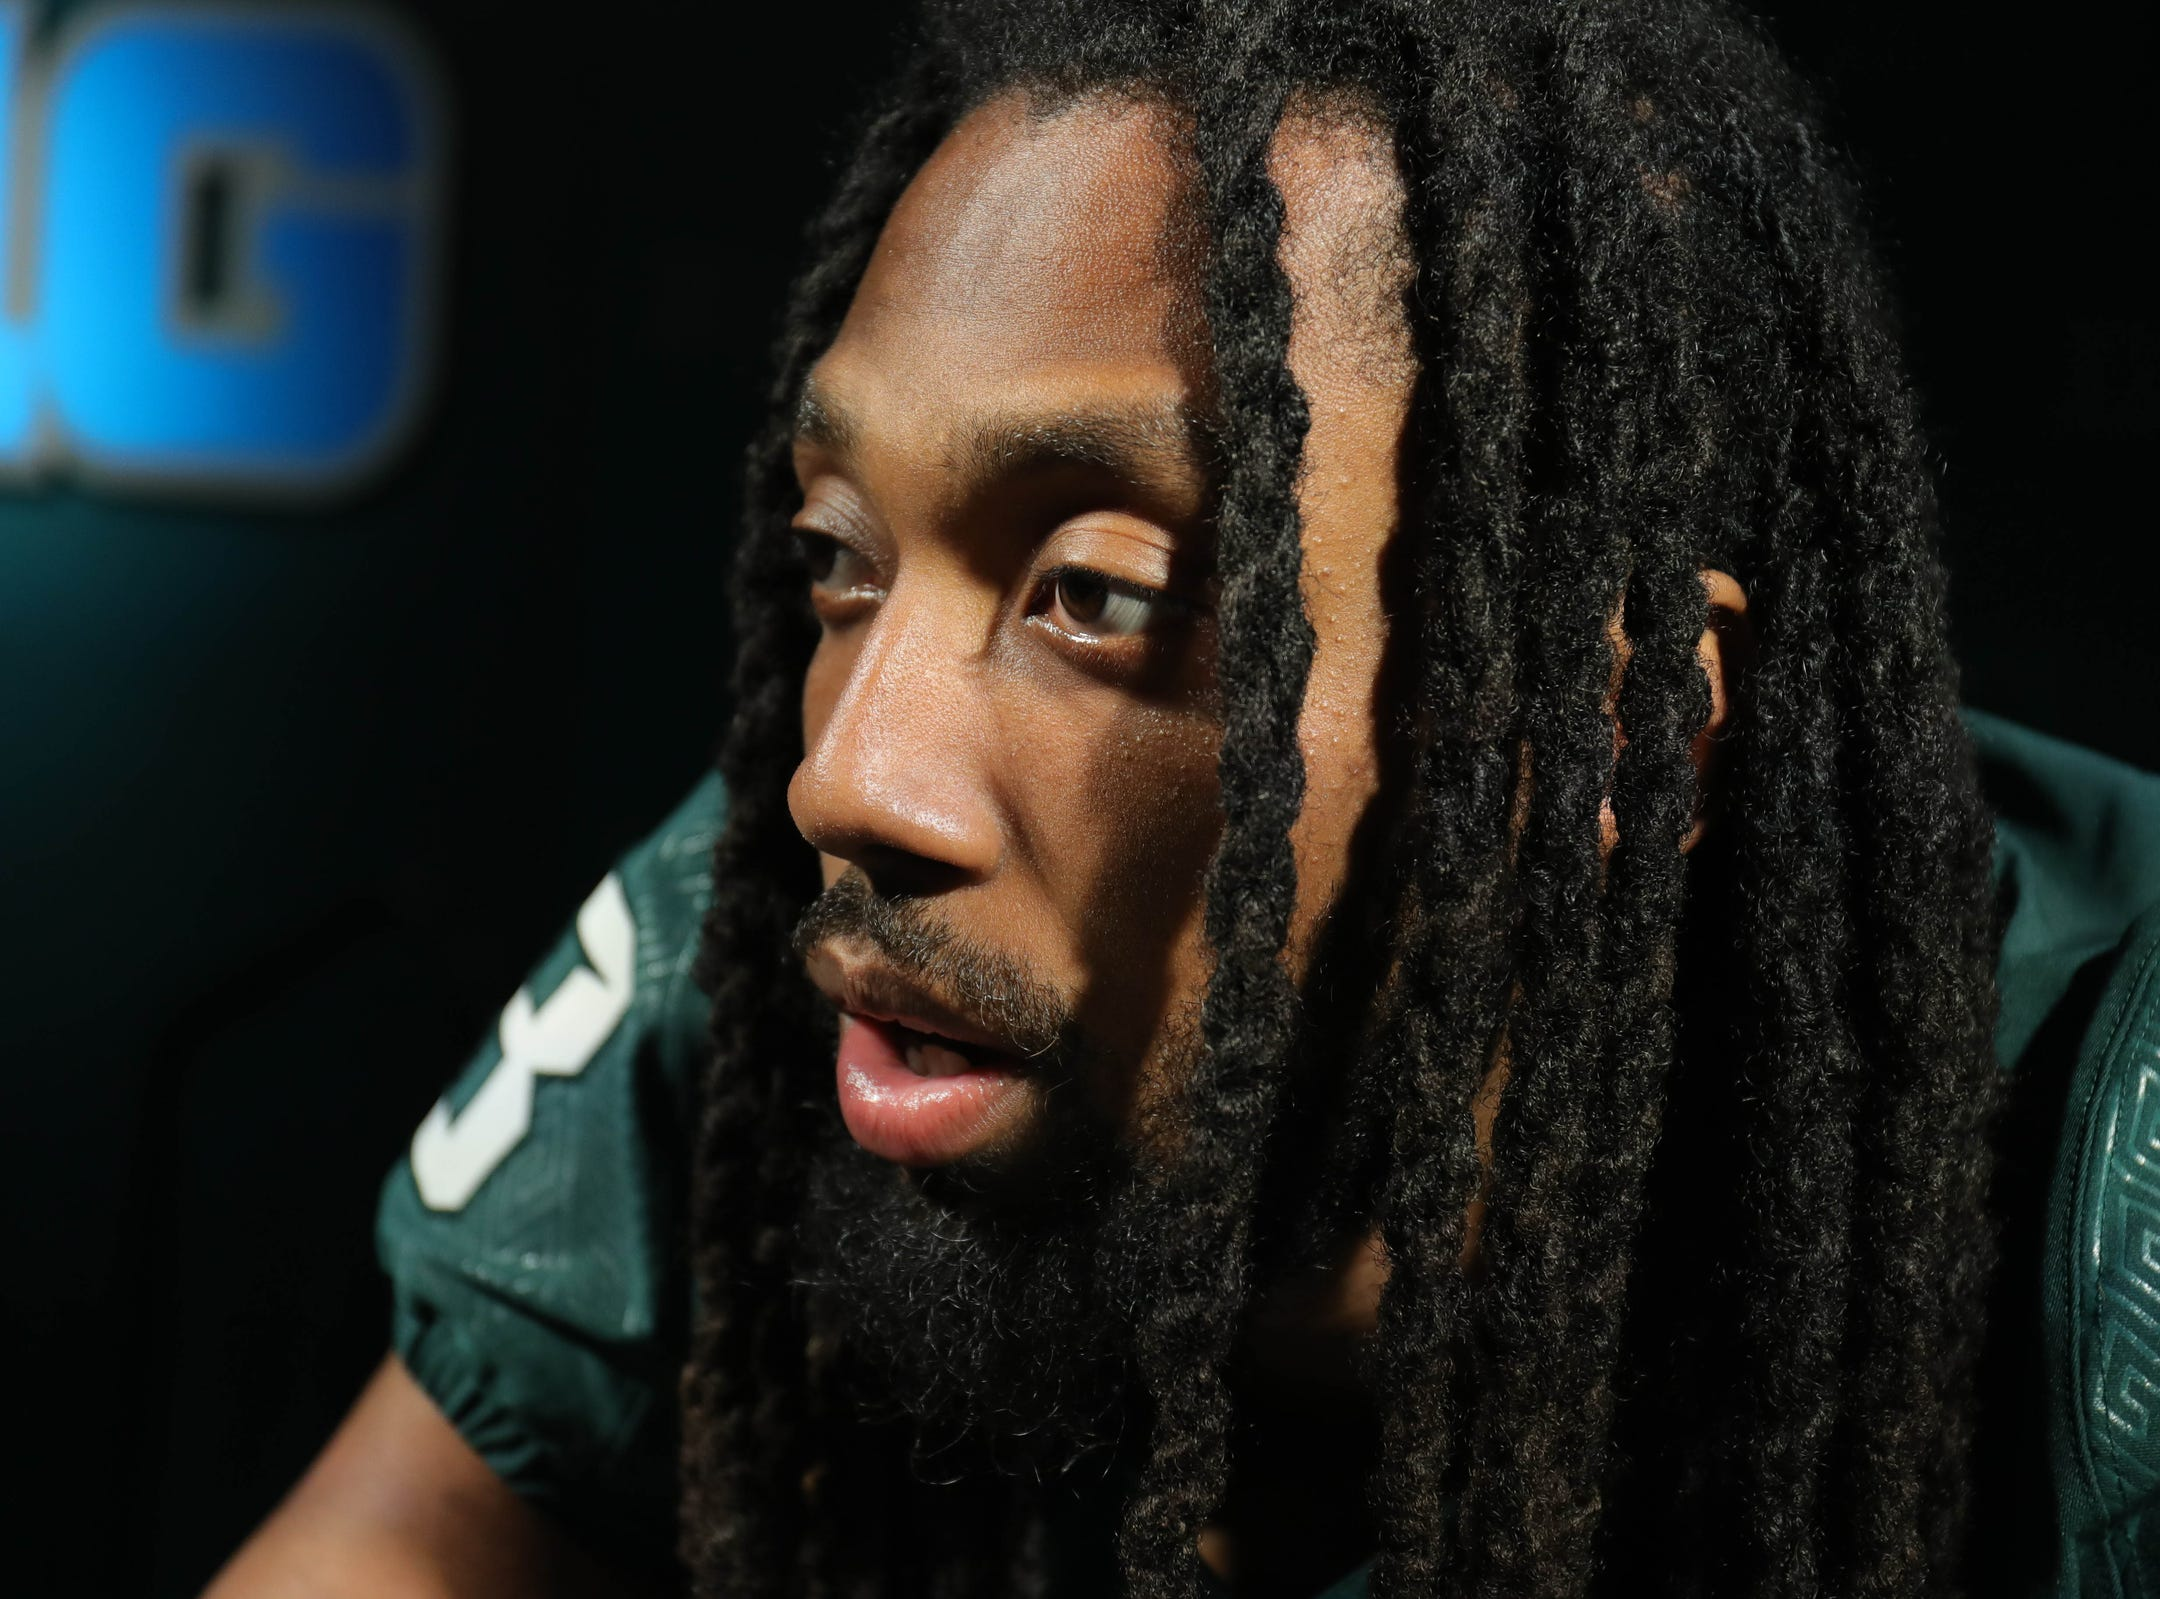 MSU reciever Felton Davis III talks with reporters about the upcomming season Monday, August 6, 2018, at Spartan Stadium in East Lansing, Mich.